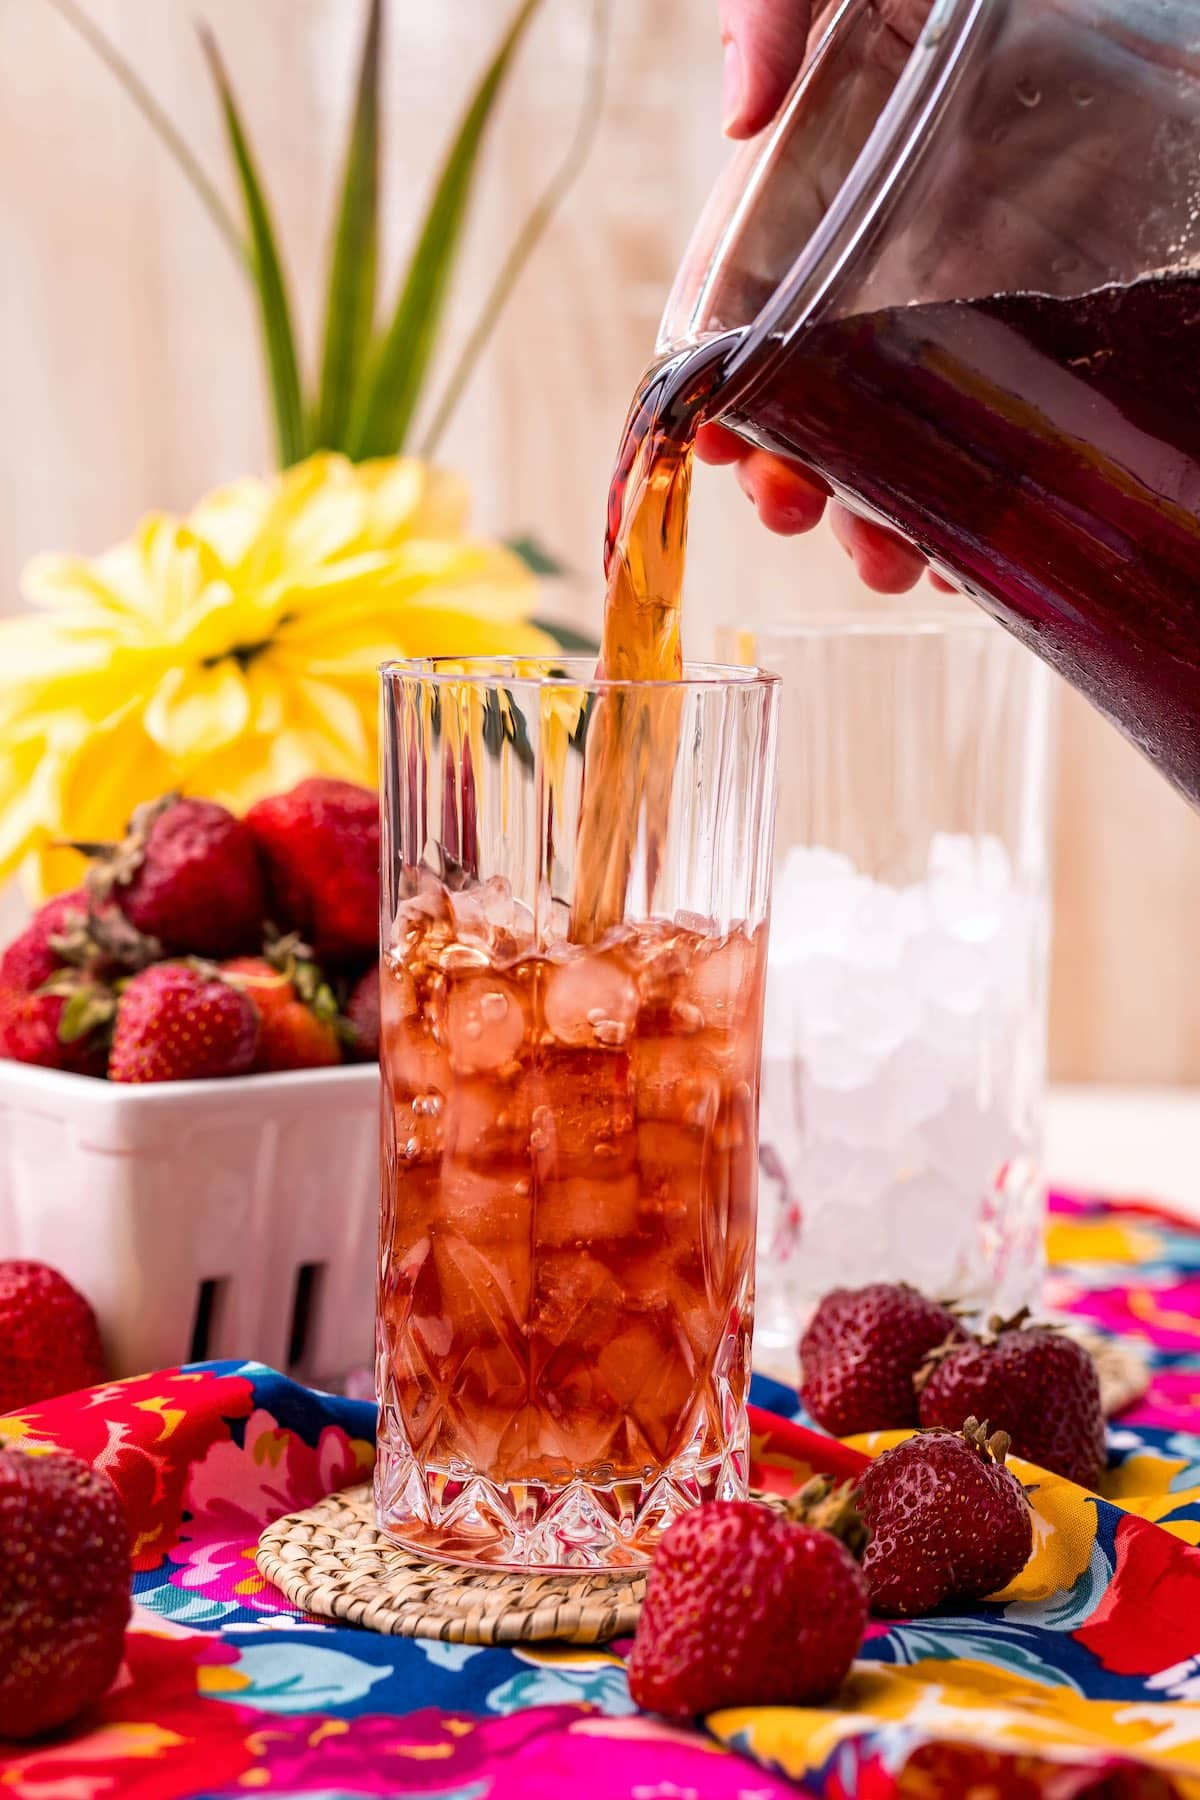 add to a glass with ice cubes